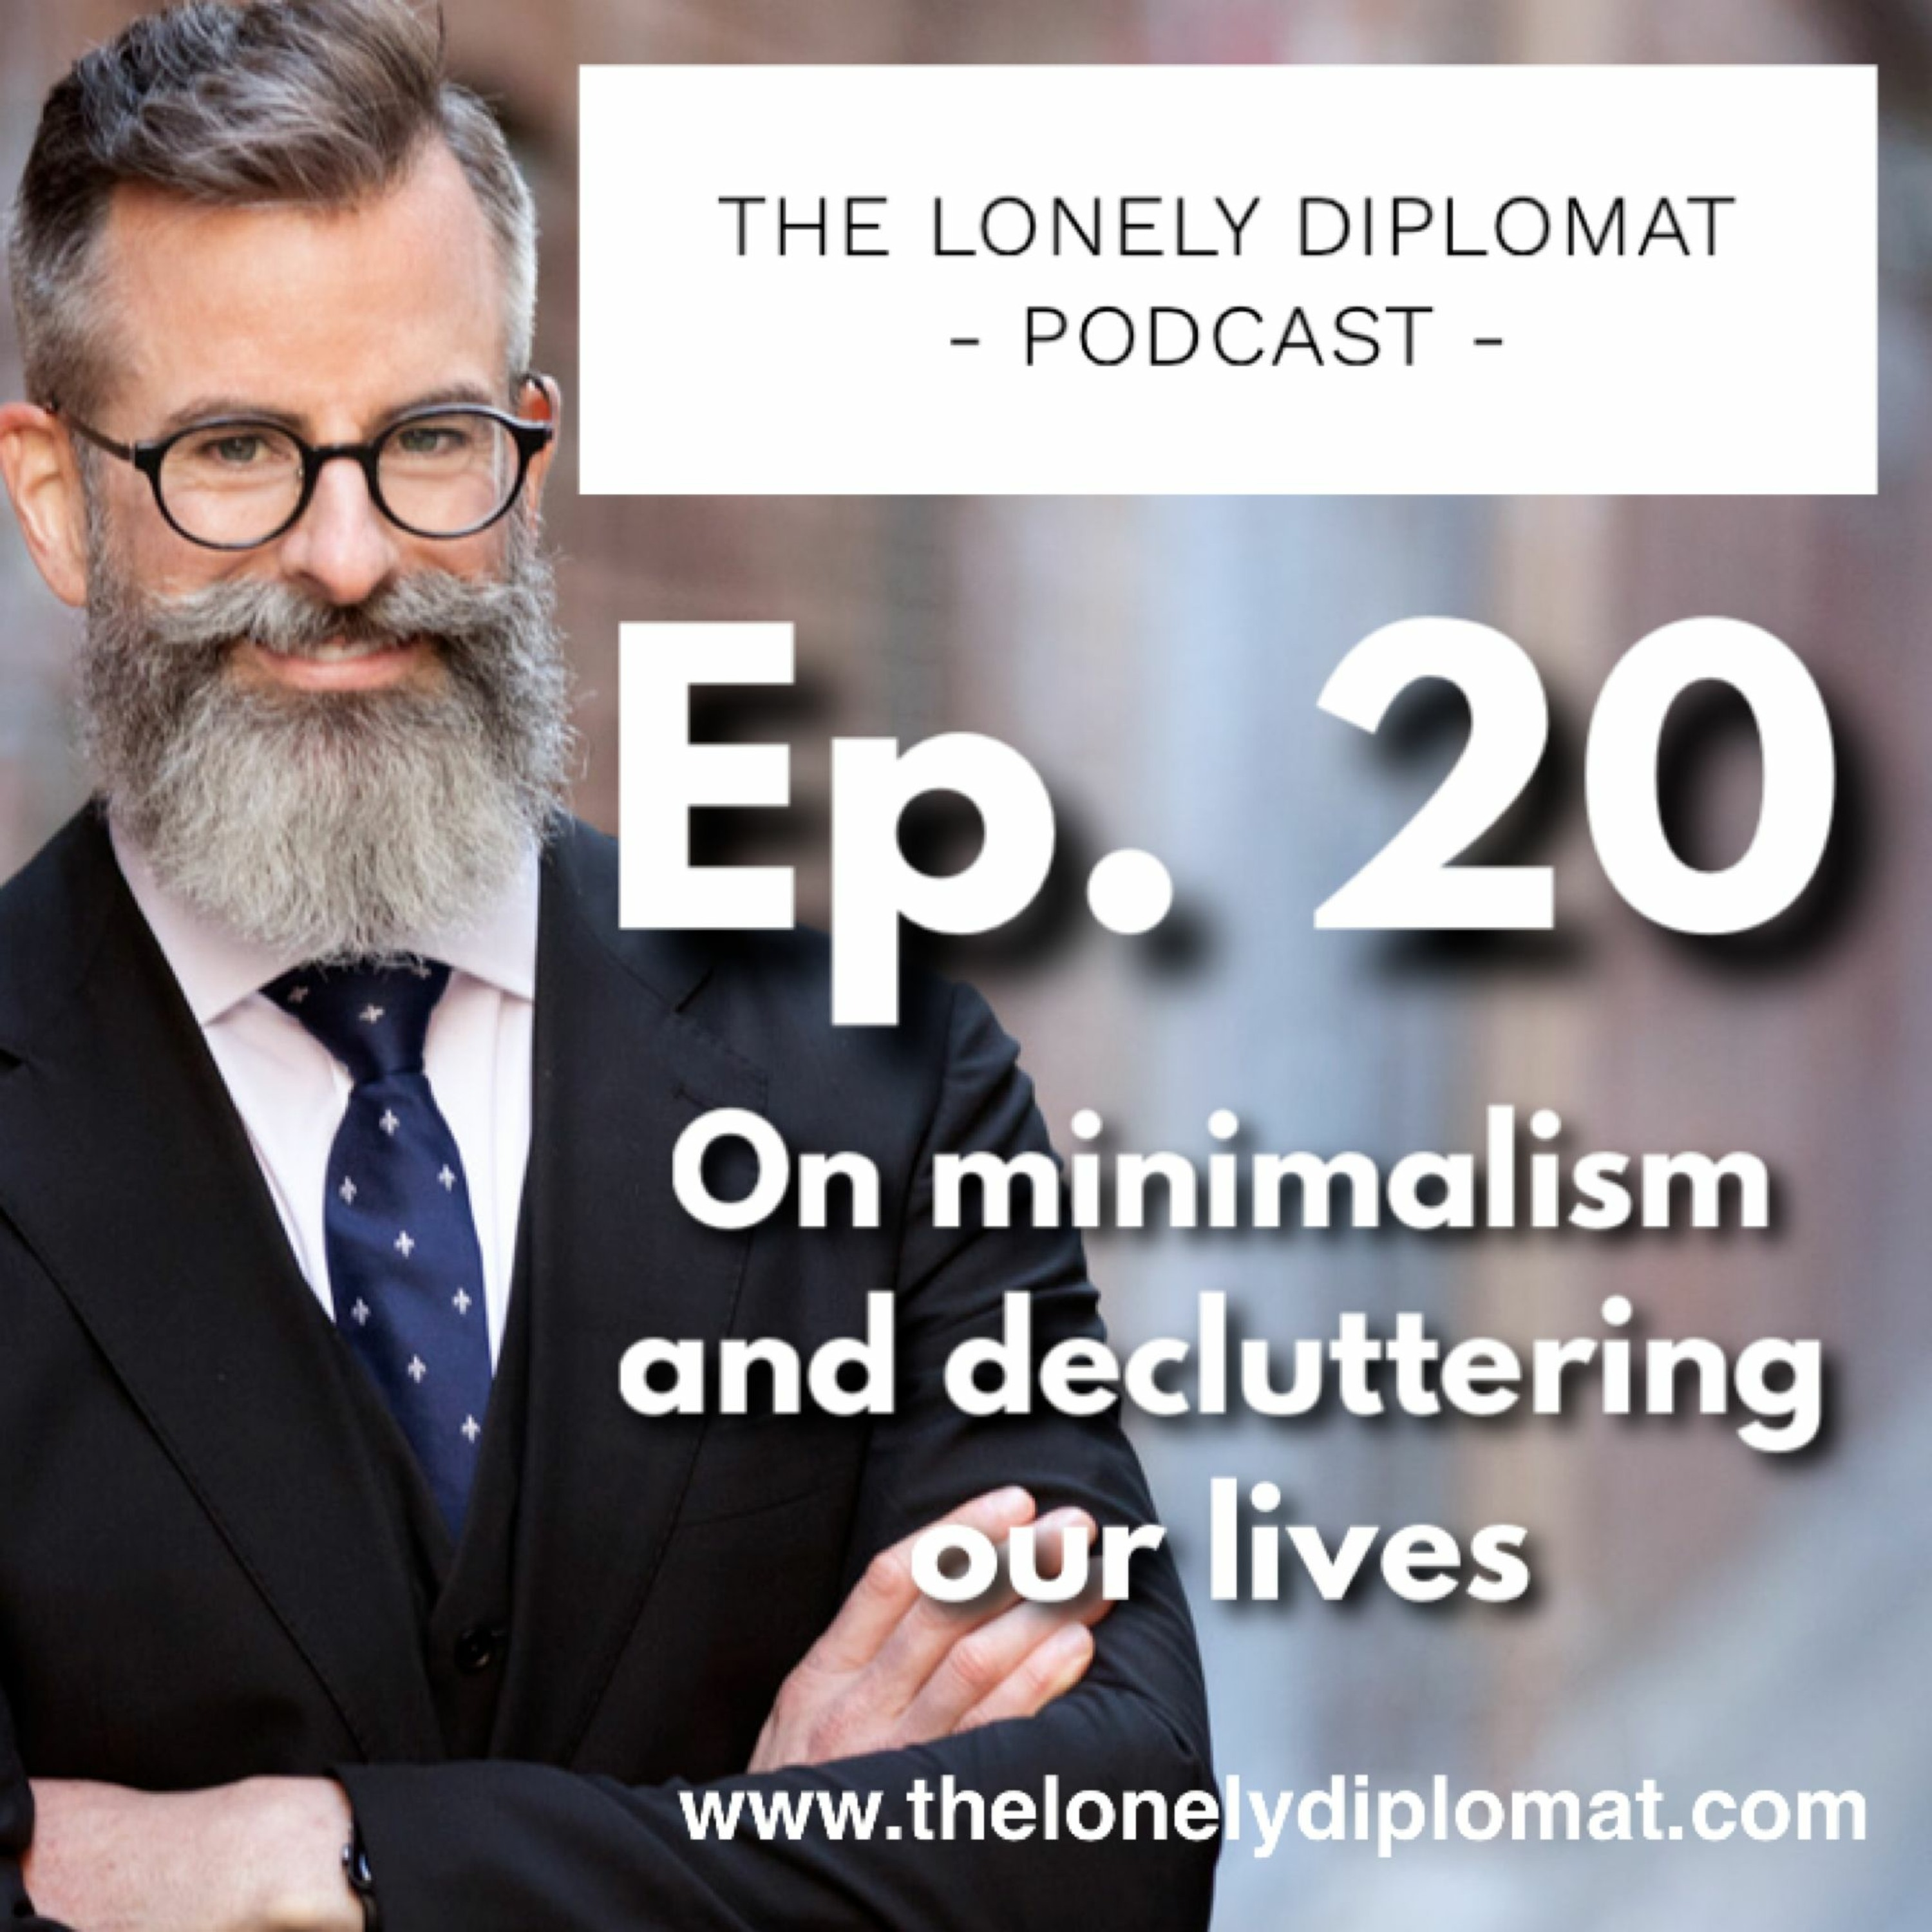 Ep. 20 - On minimalism and decluttering our lives